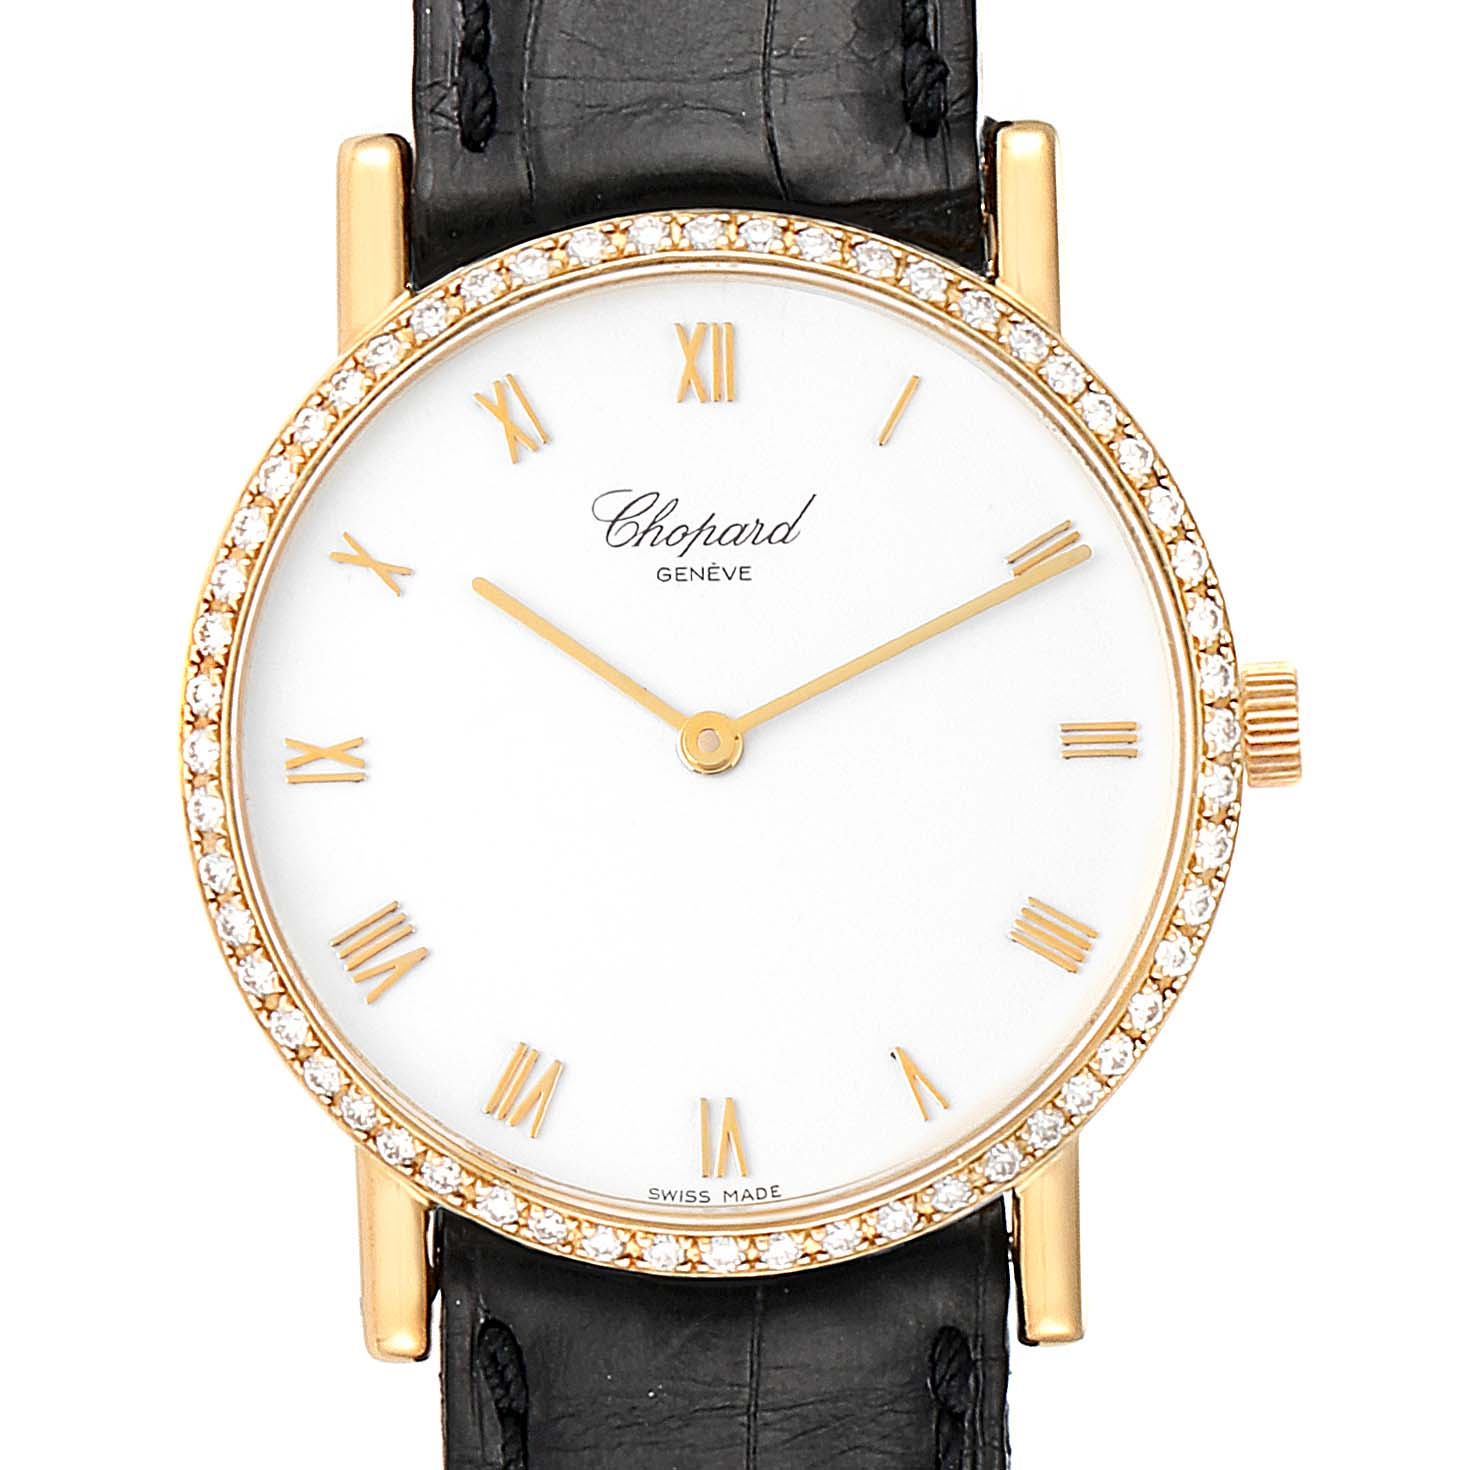 Chopard Classique Yellow Gold Diamond Mens Watch 3154 SwissWatchExpo